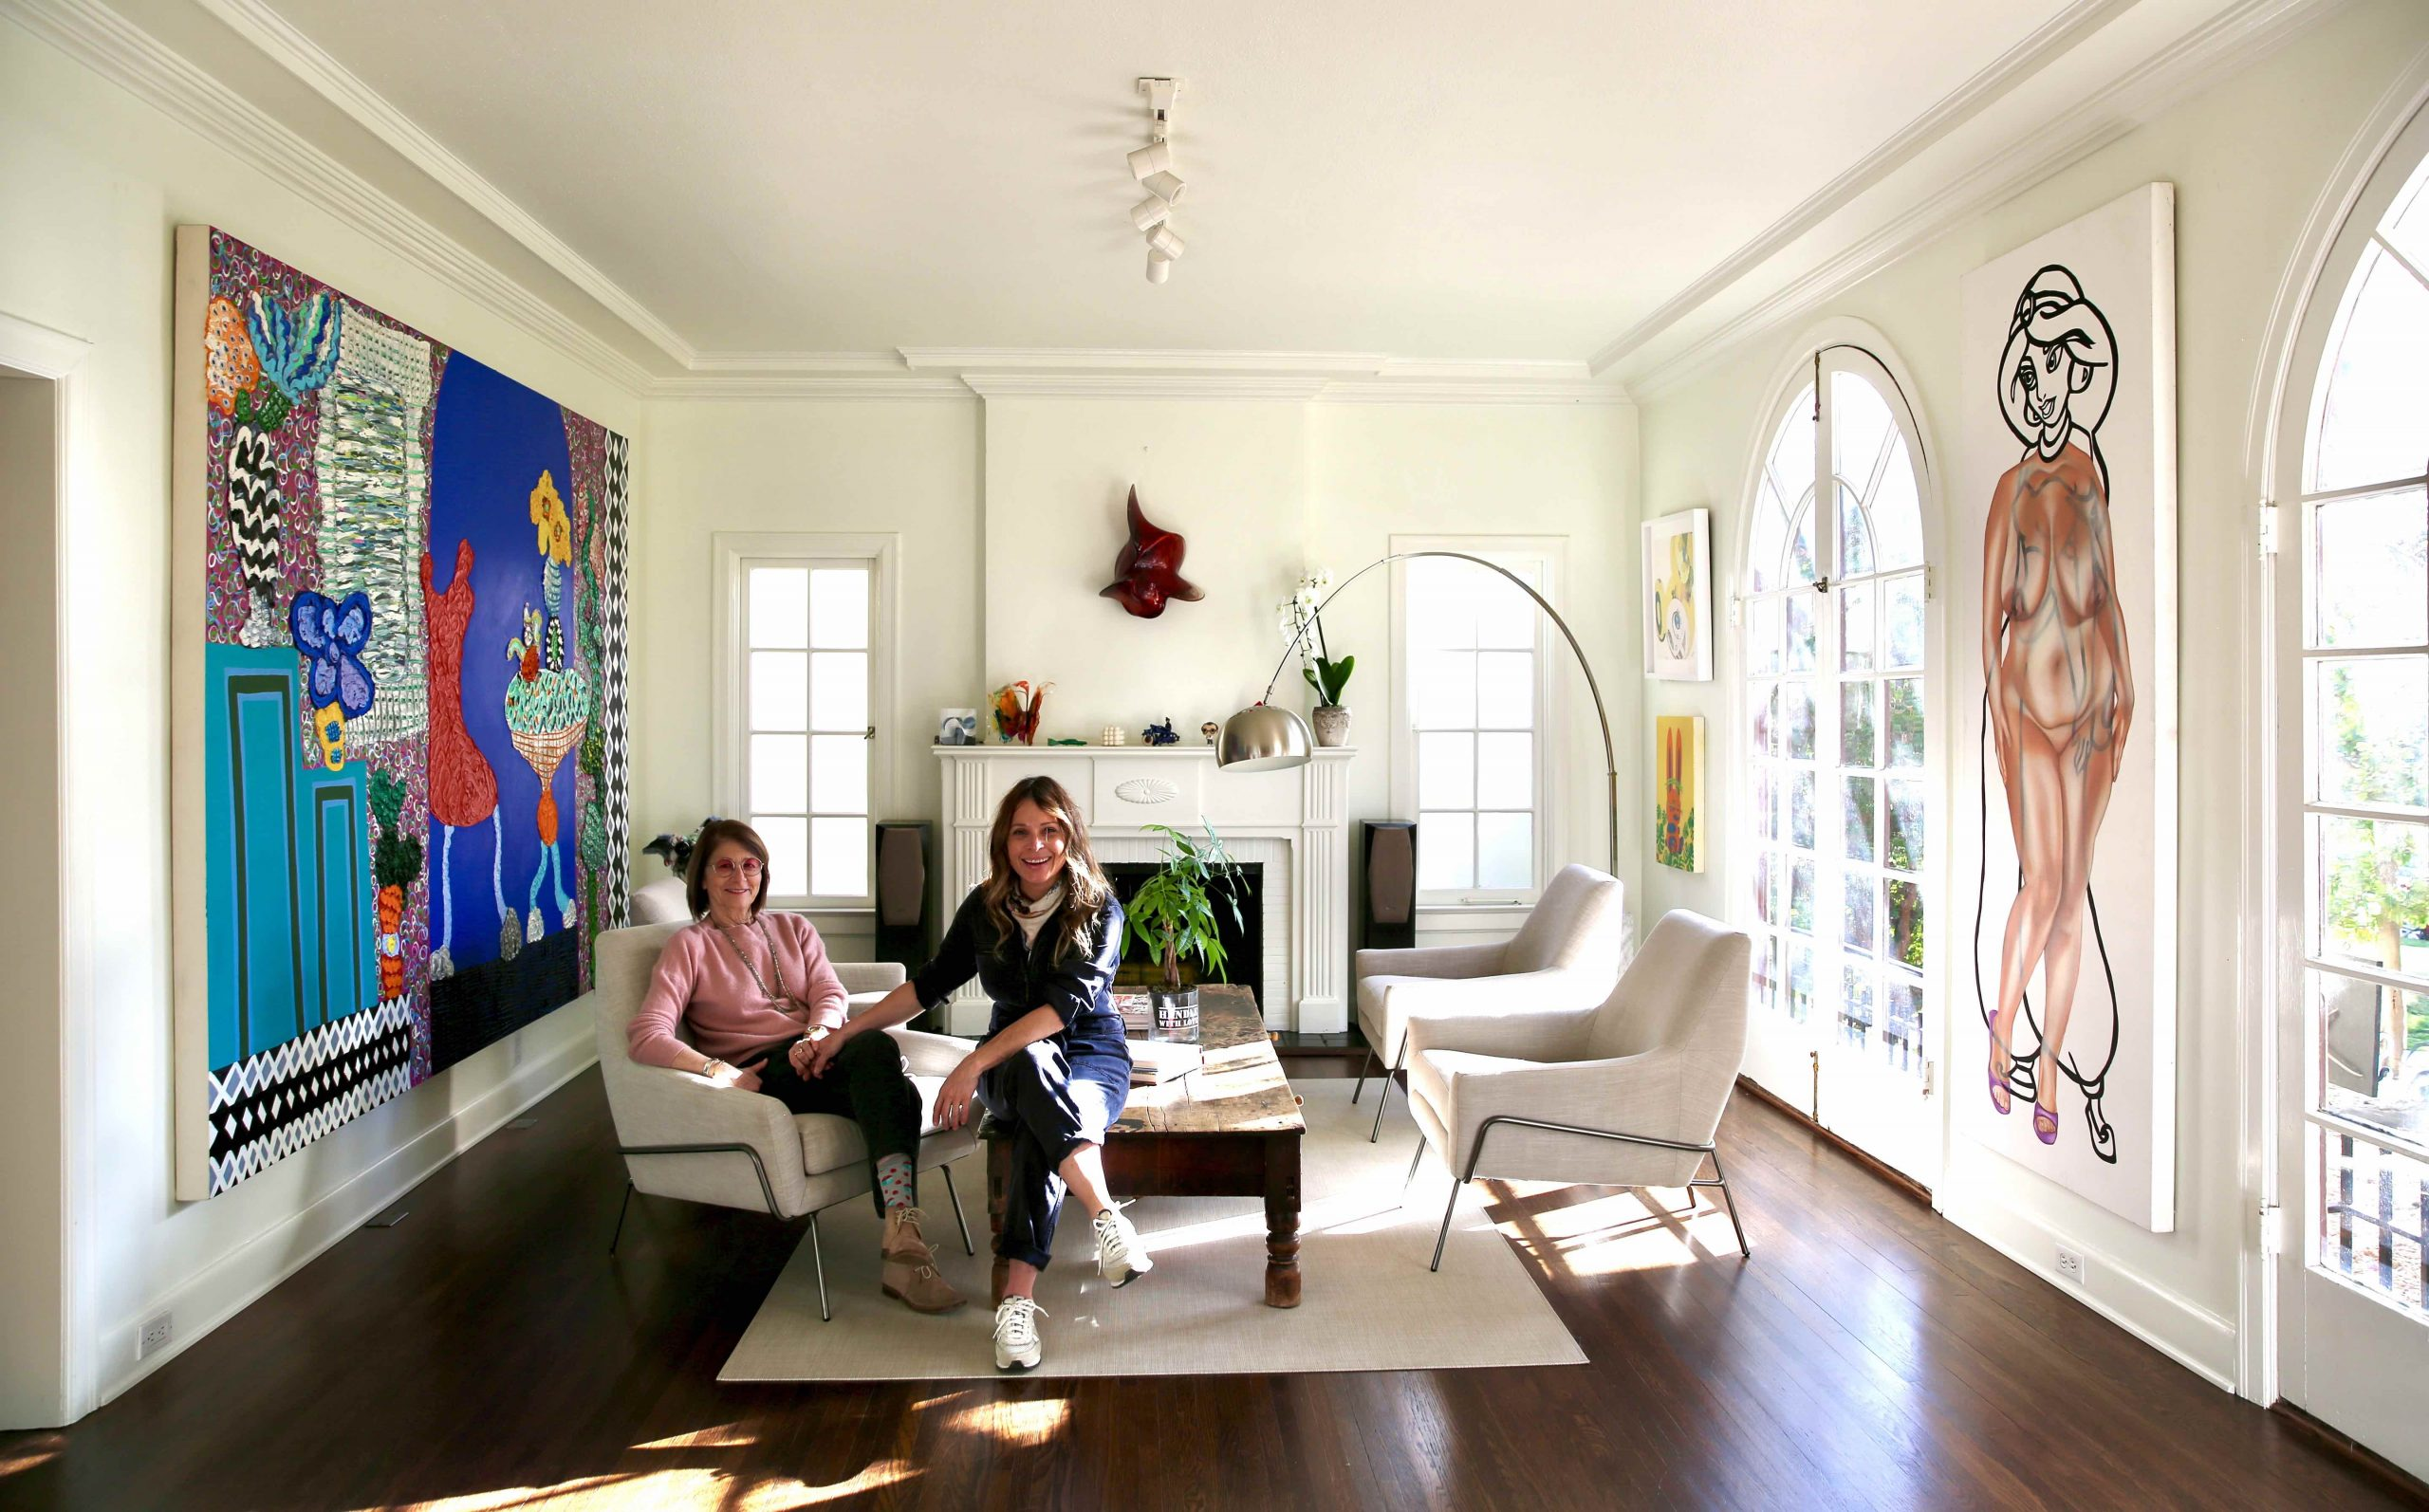 Artist Couple Marisabel Bazan and Lisa Schulte on Sharing One Studio for Their Two Very Different Art Practices | Artnet News